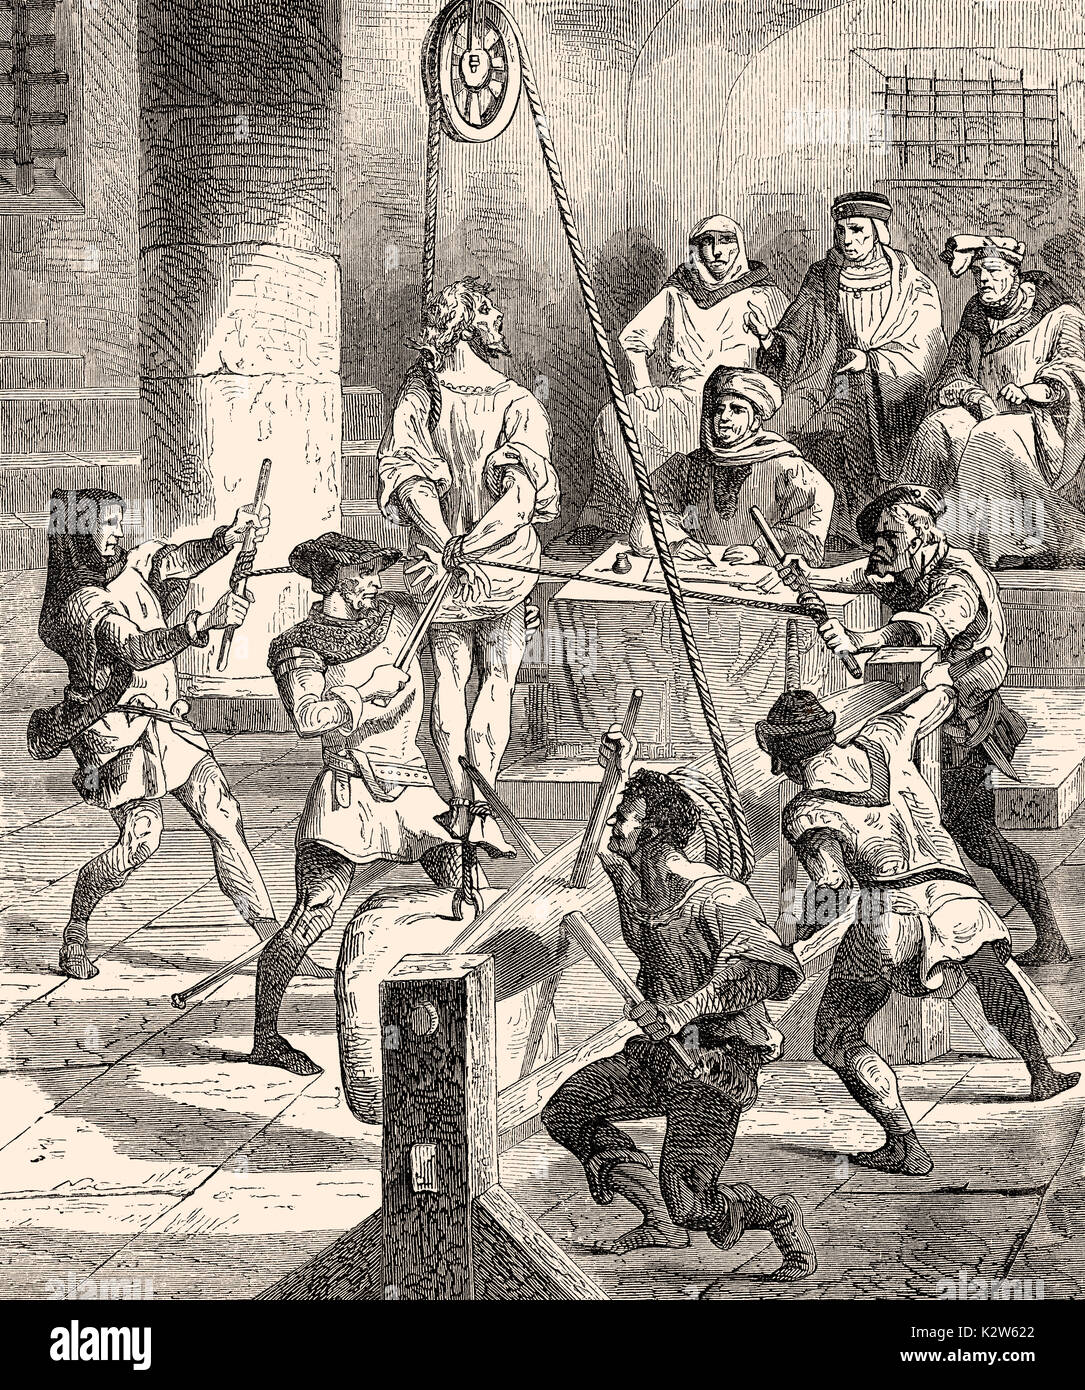 Inquisition, the cruel torture methods of the Church in the 16th century - Stock Image